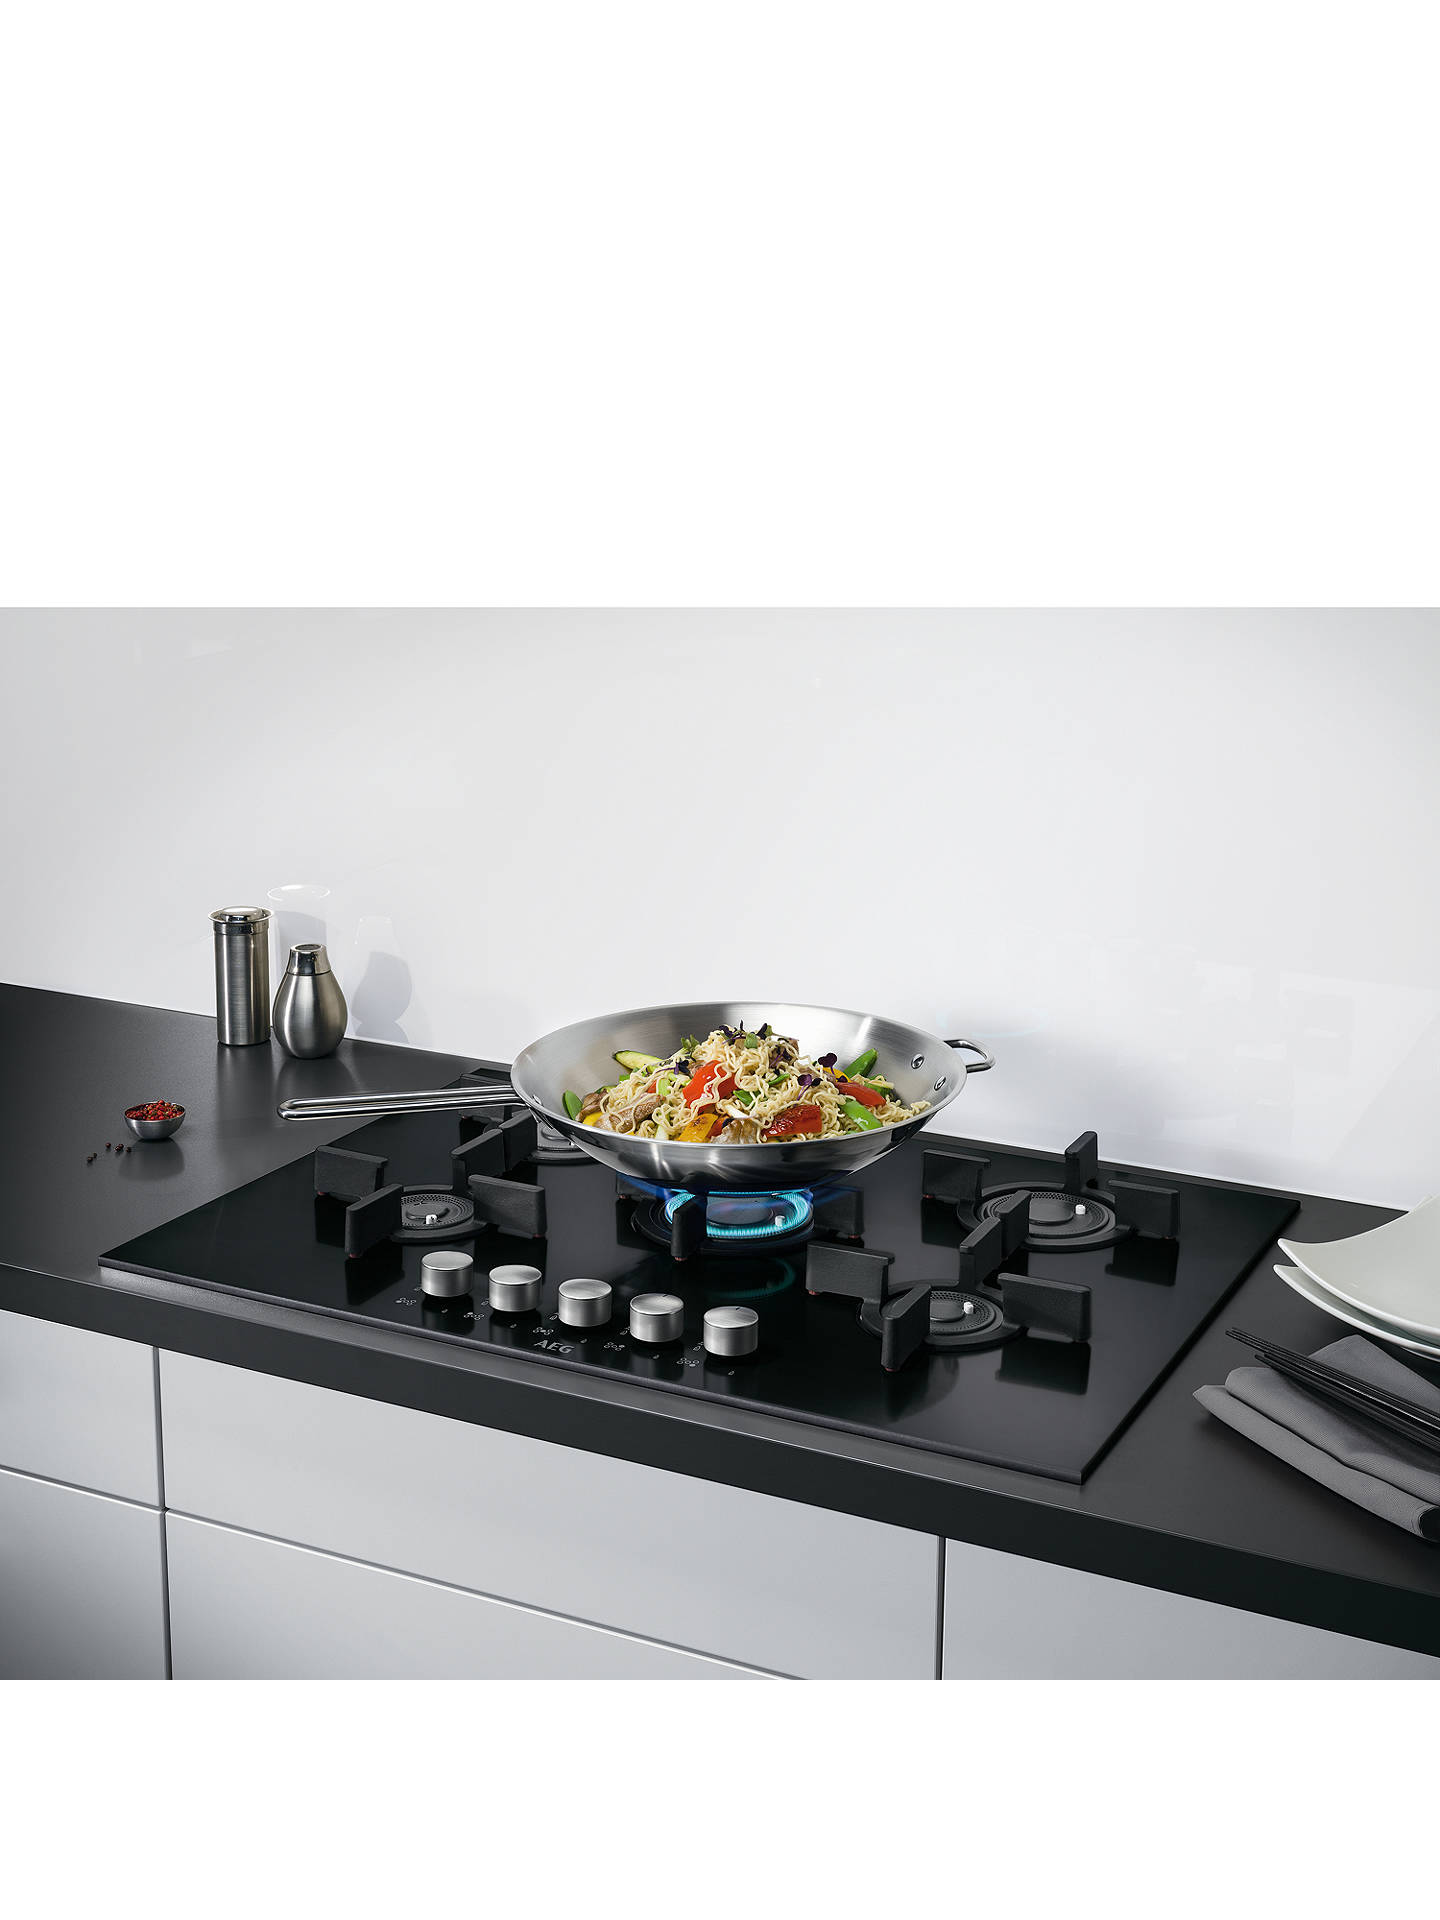 BuyAEG HG795840NB Integrated Gas Hob, Black Online at johnlewis.com